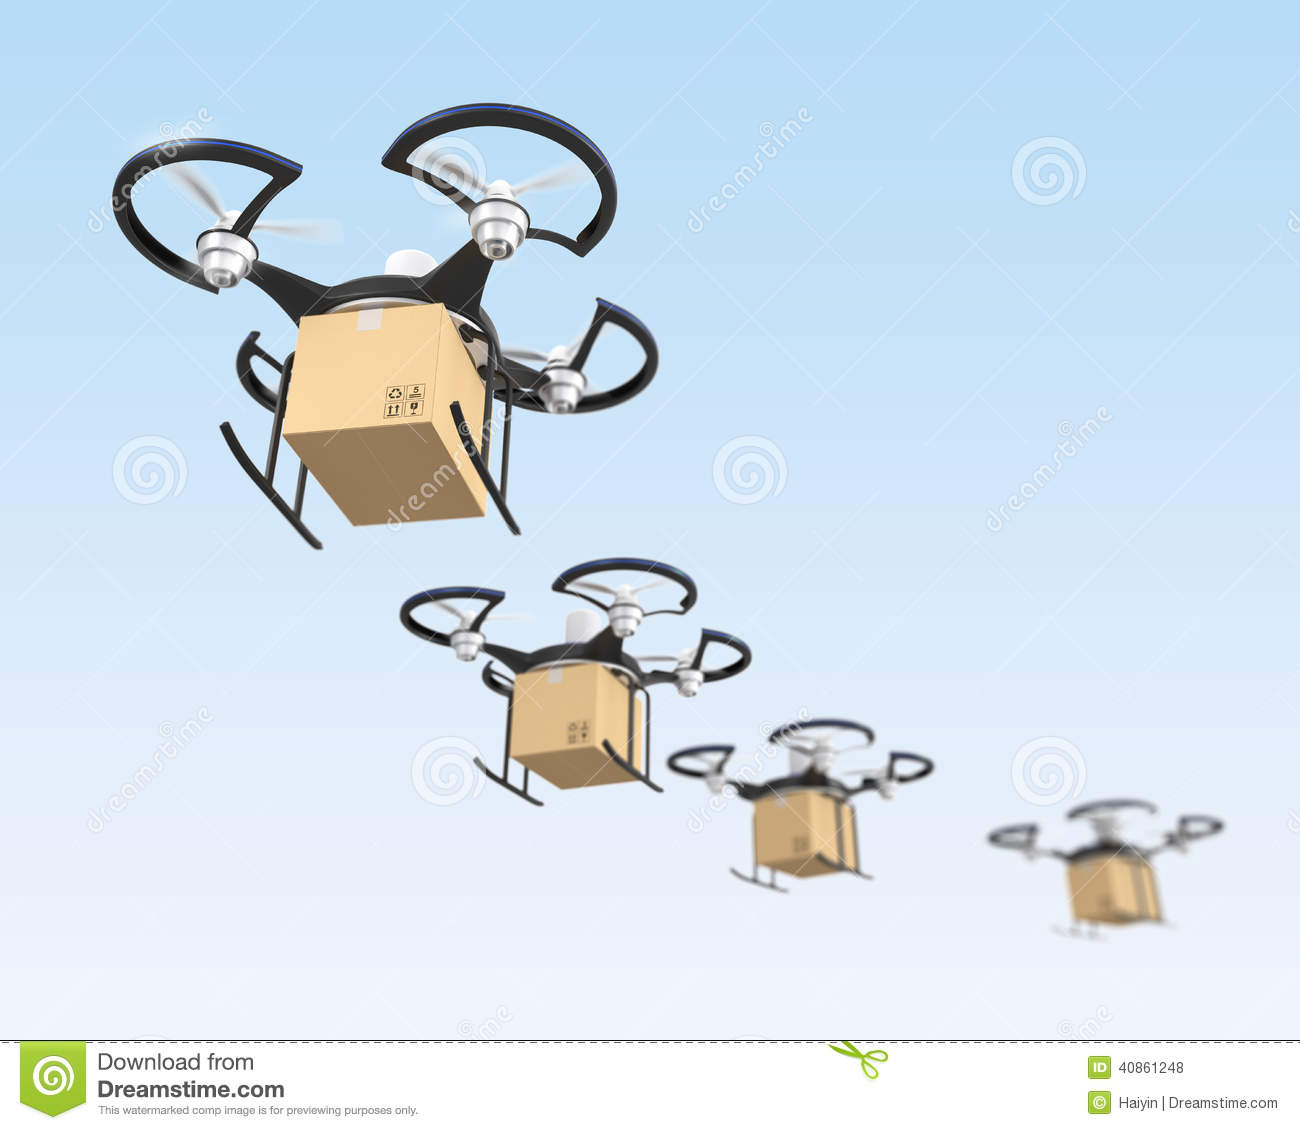 Air Drones With Carton Package In The Sky Stock